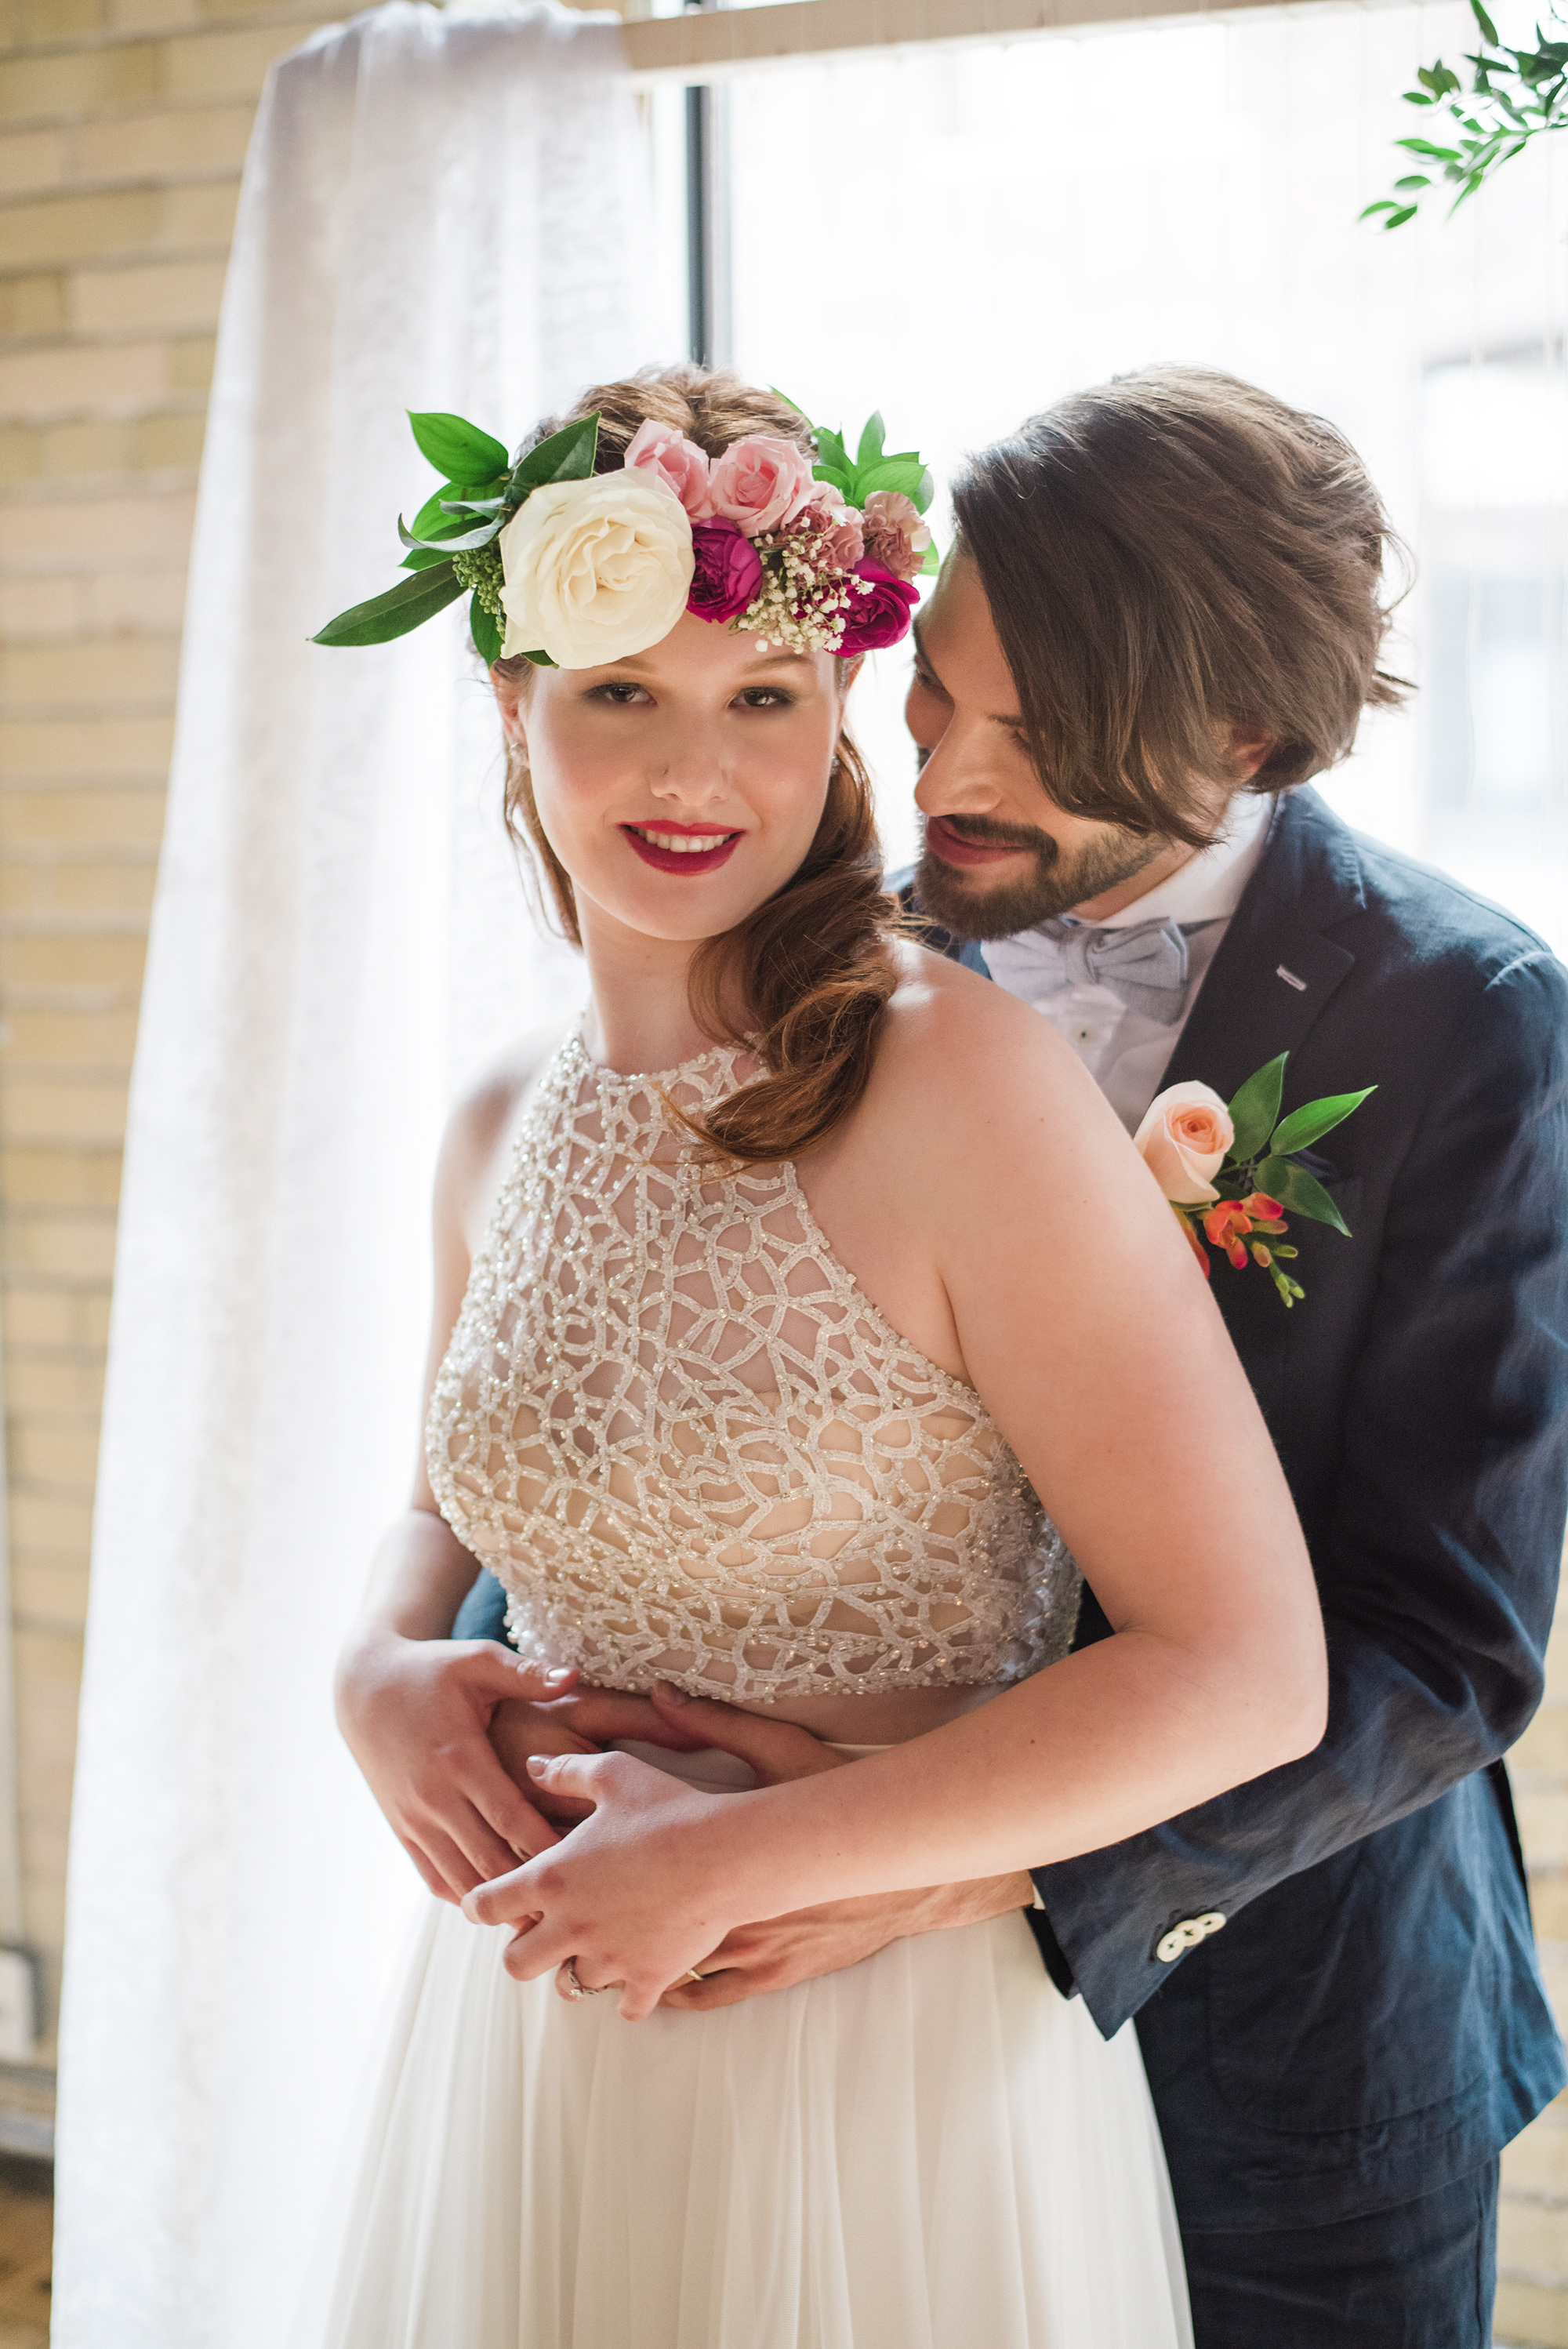 Bride_Groom_BoHo_Wedding_Details_Published_Shoot